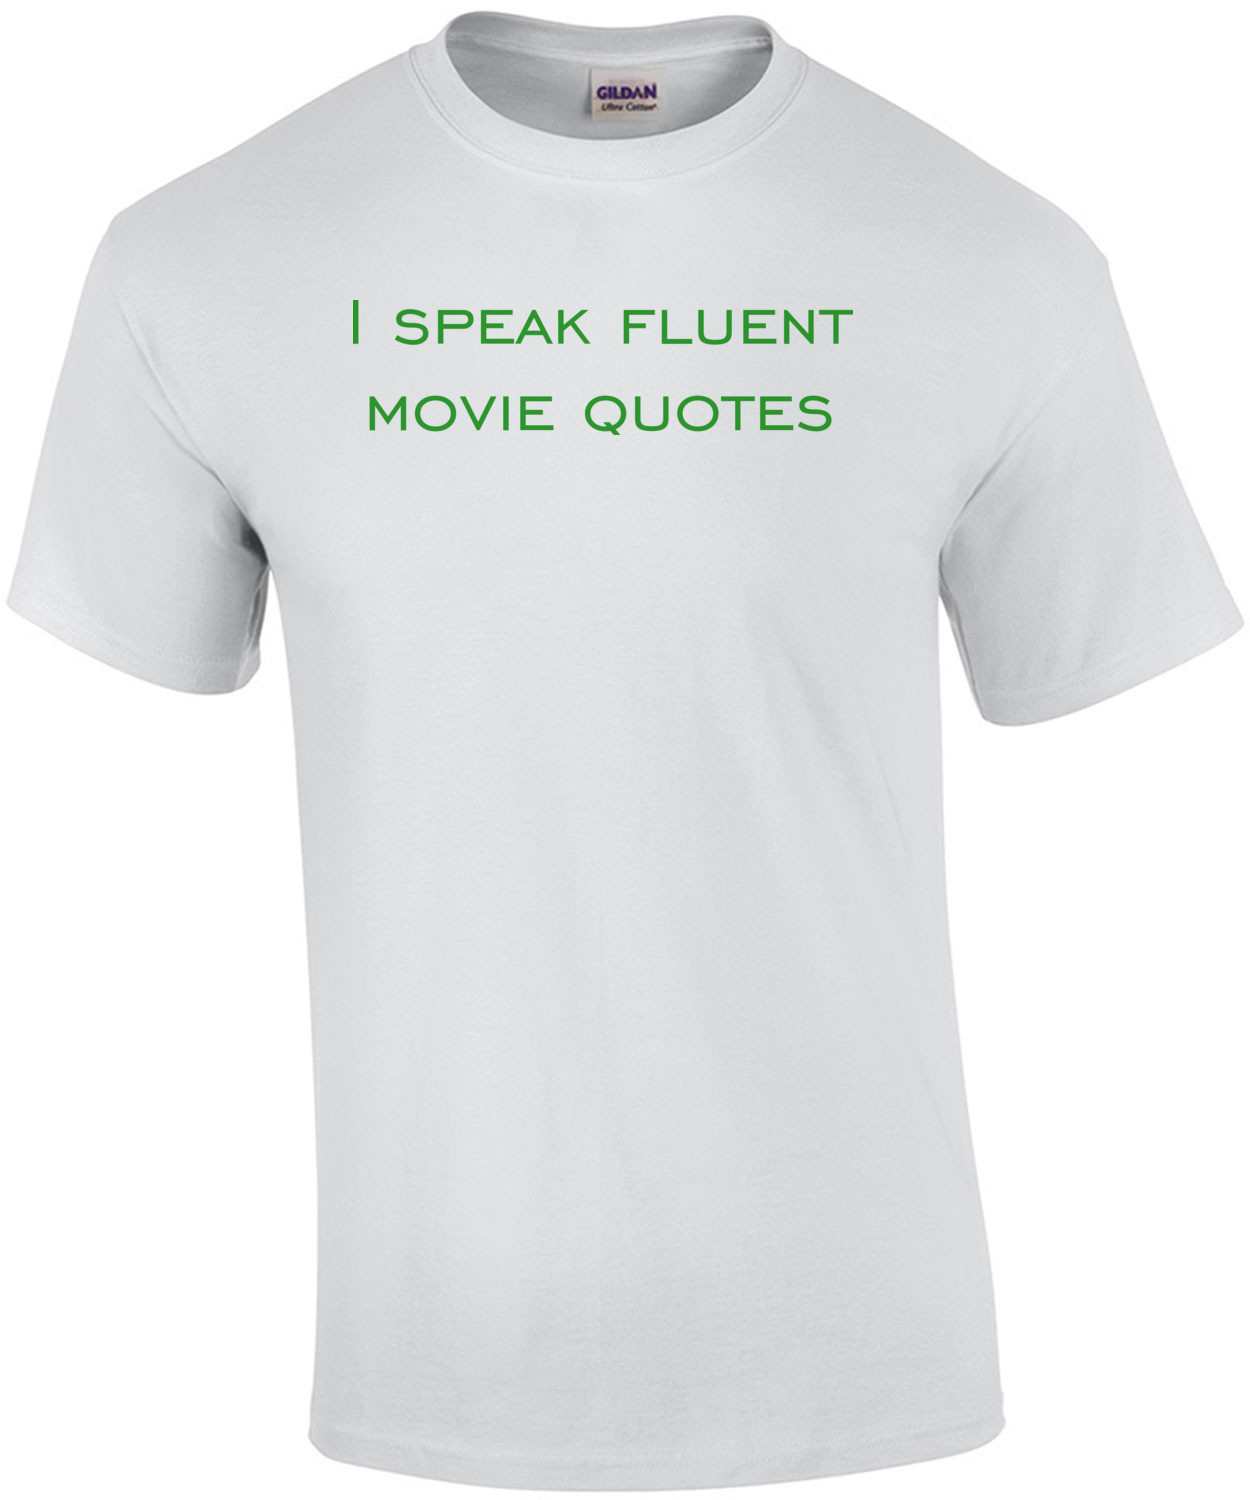 I speak fluent movie quotes funny Shirt